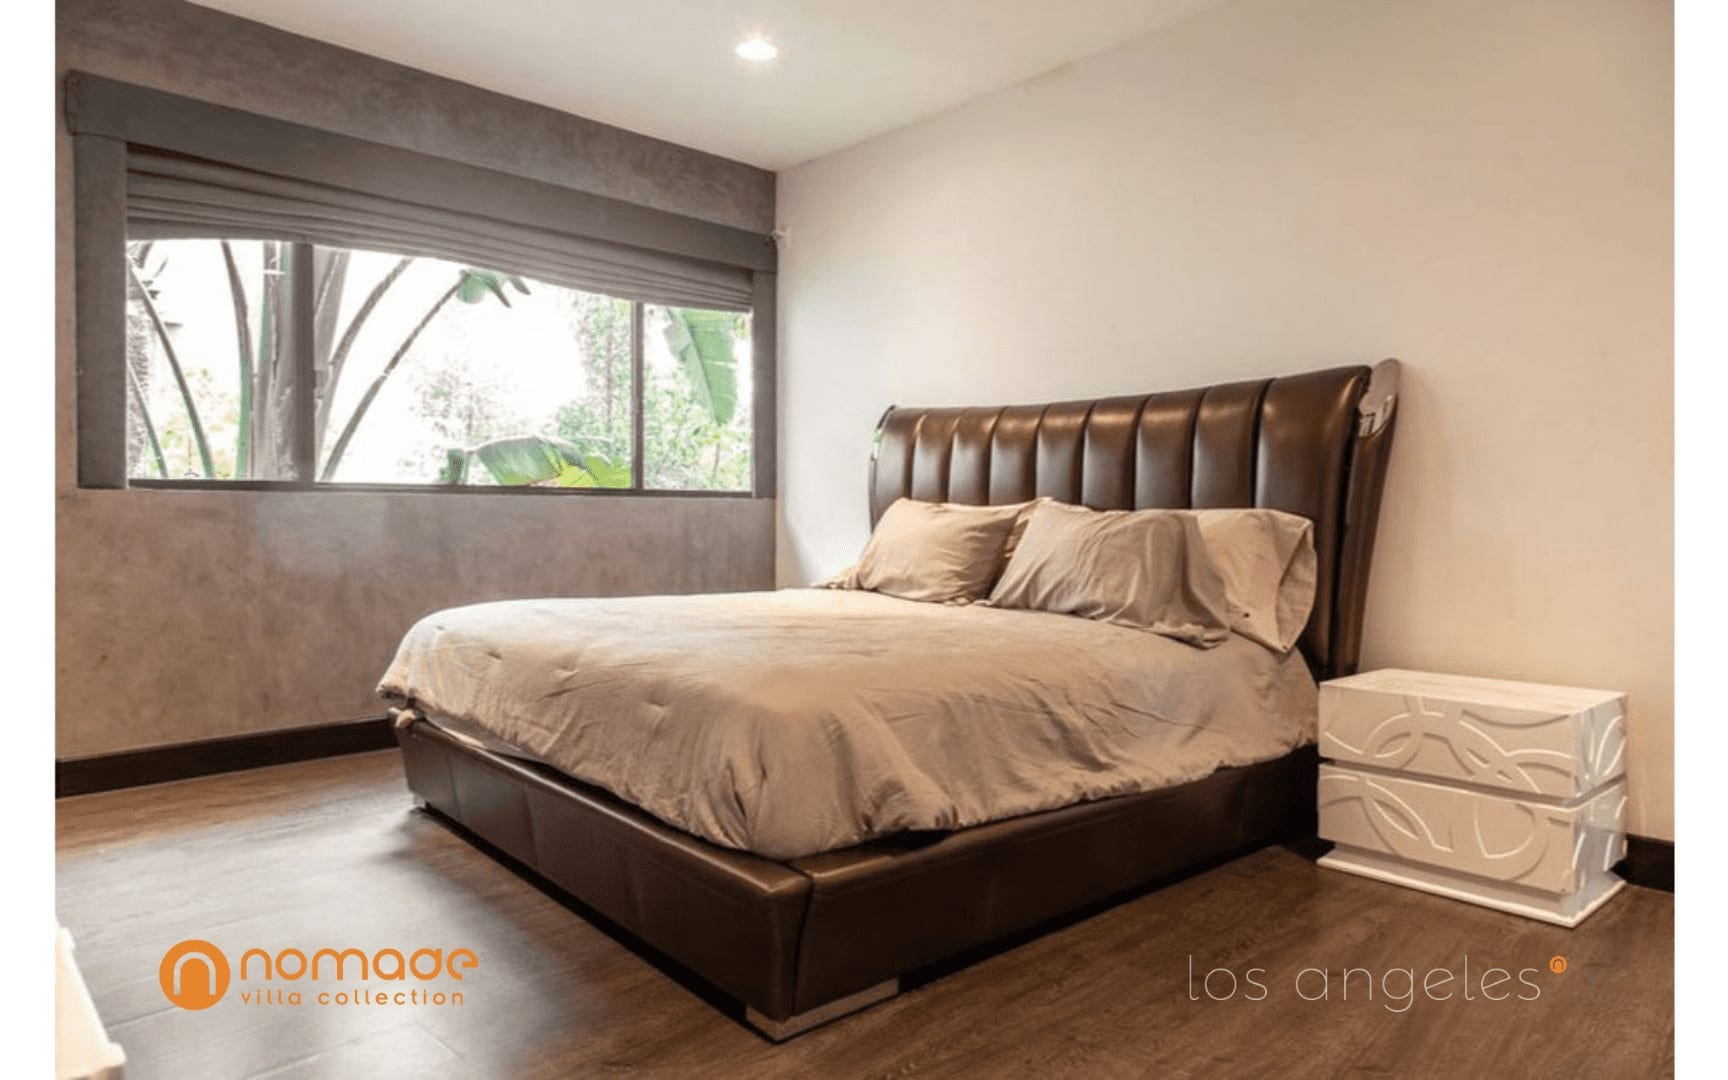 70-Legacy-oasis-guest-room